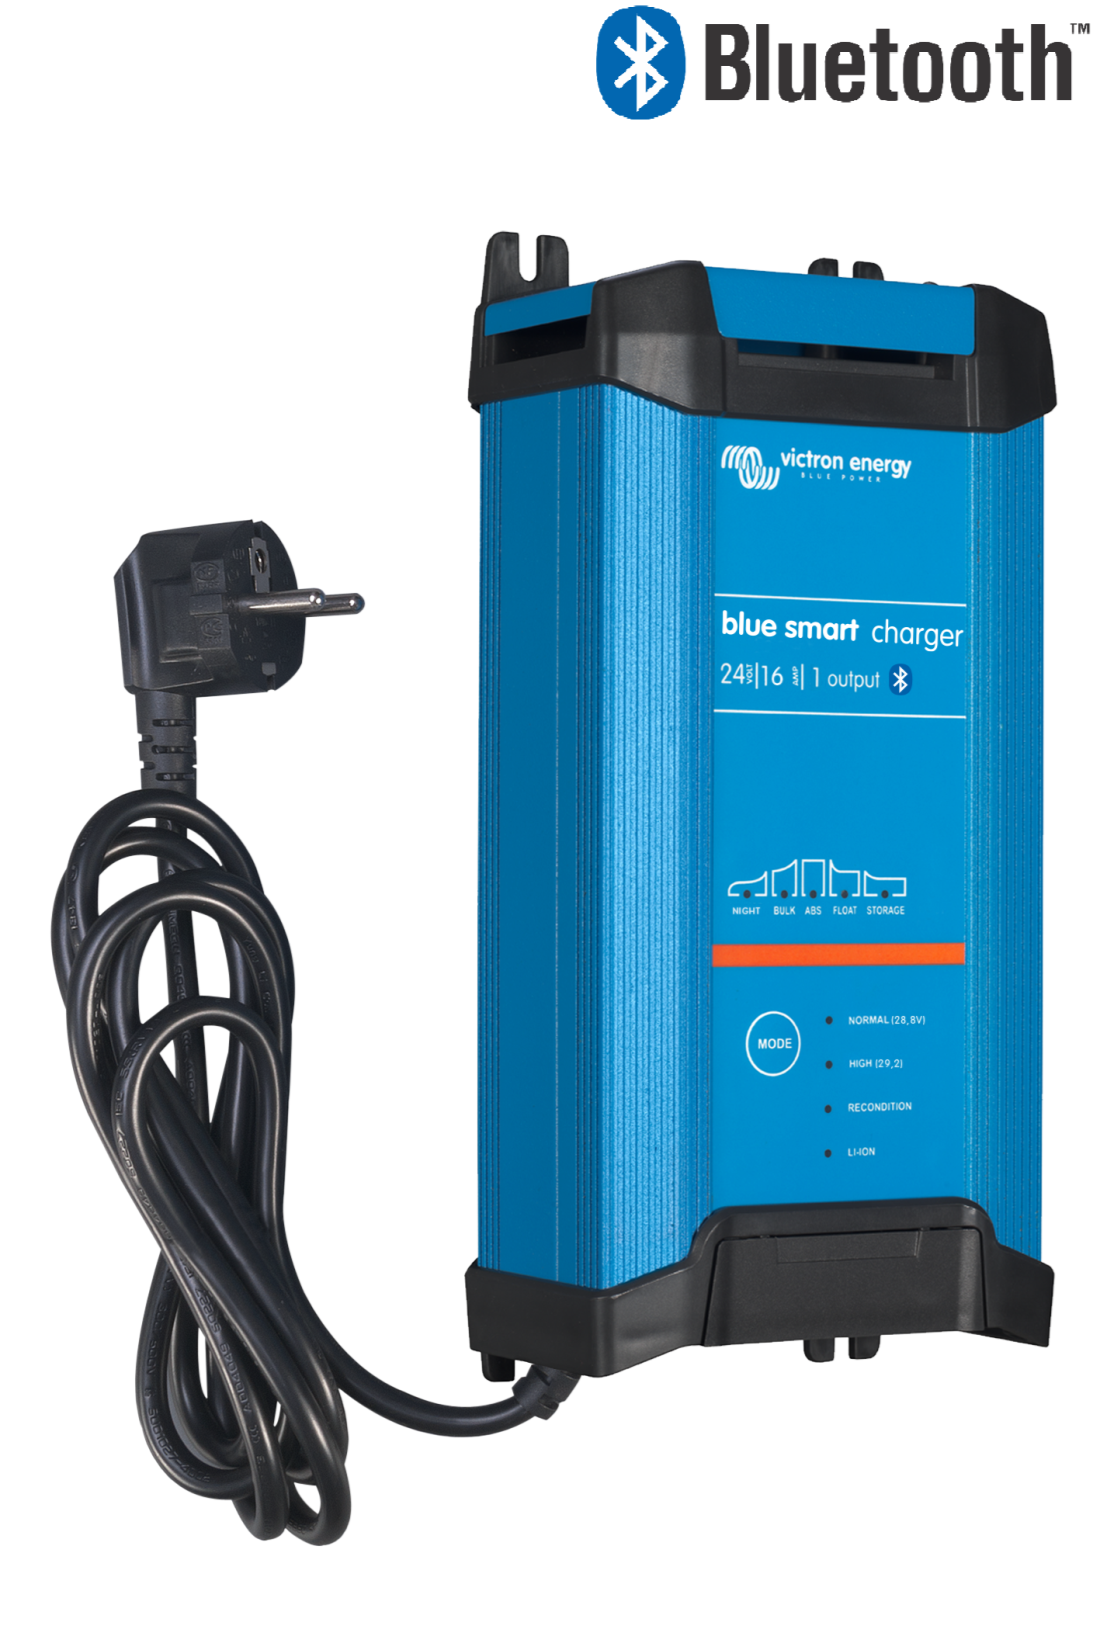 Victron Blue Smart IP22 Charger 24 volt 16 ampere batterilader med 3 utganger og Bluetooth